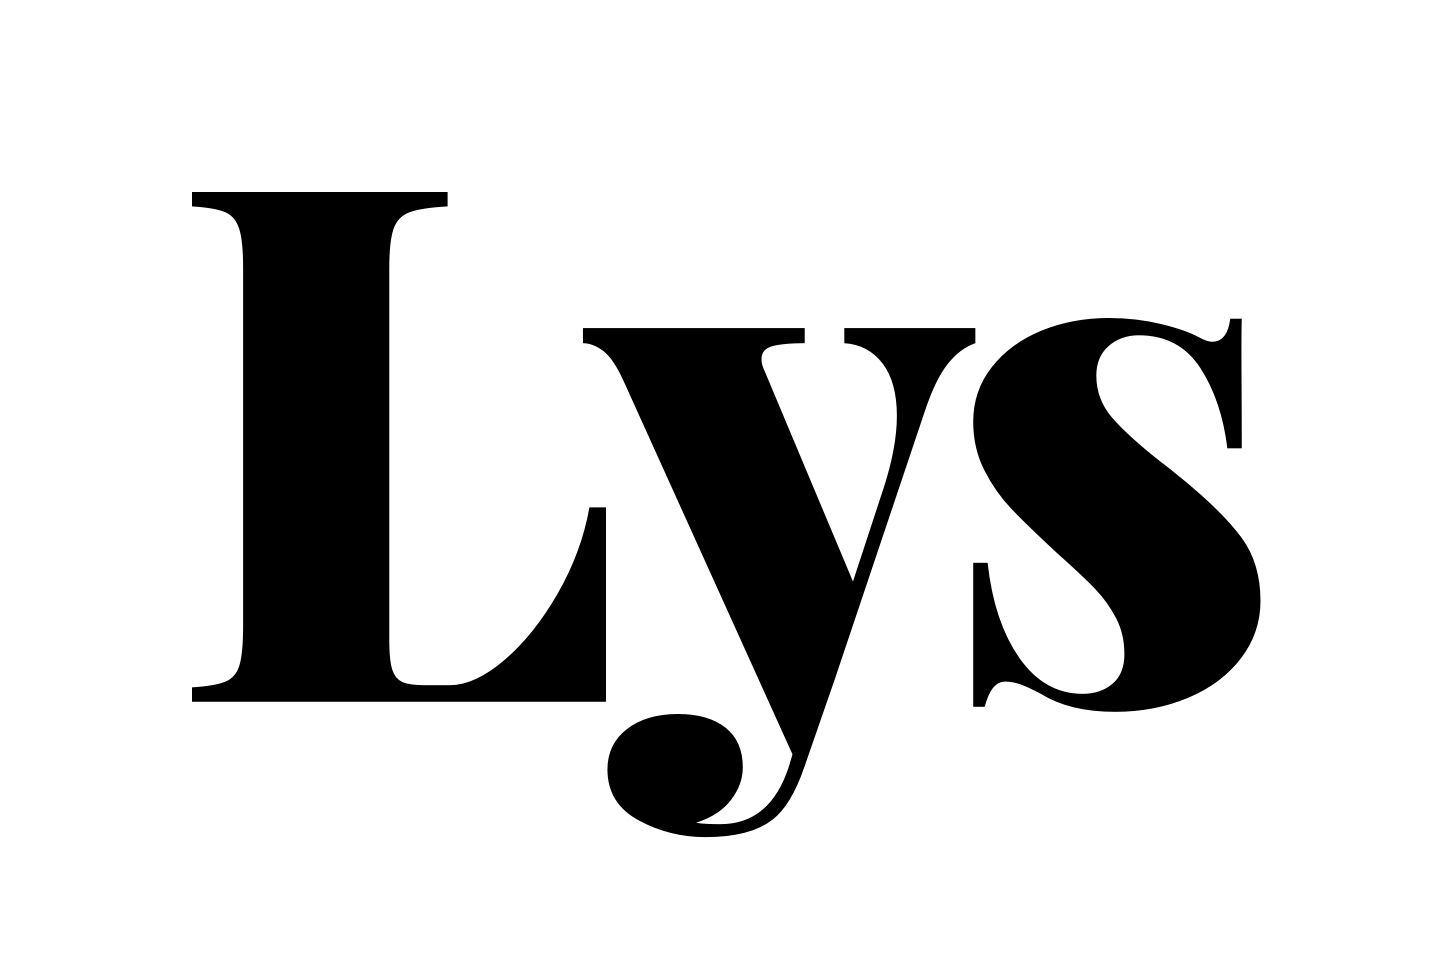 Lys: A language that compiles to WebAssembly | Agustin Mendez